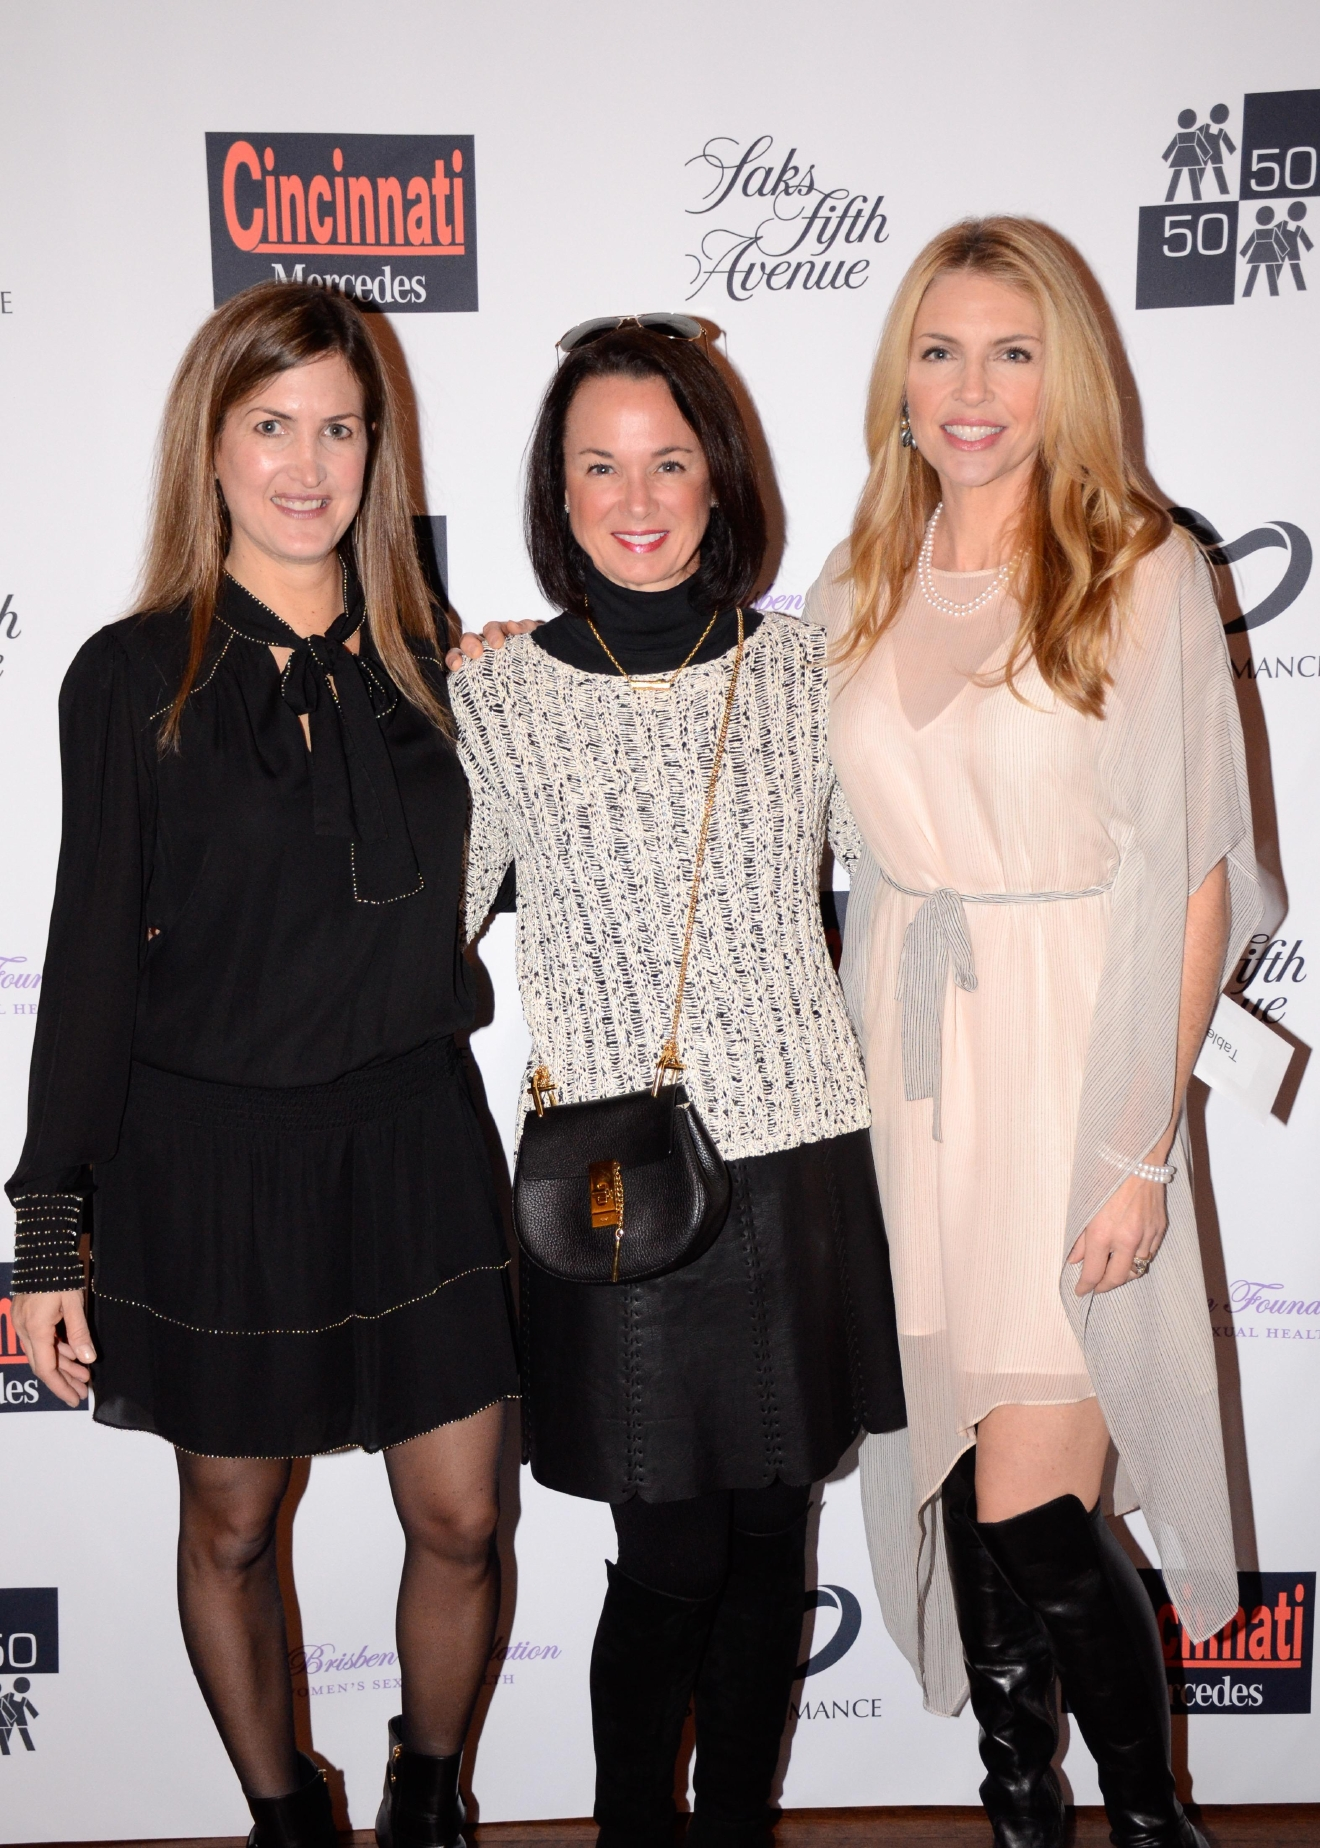 Allison Kahn, Toni Nevins, and Cecily Harness / Image: Bob White